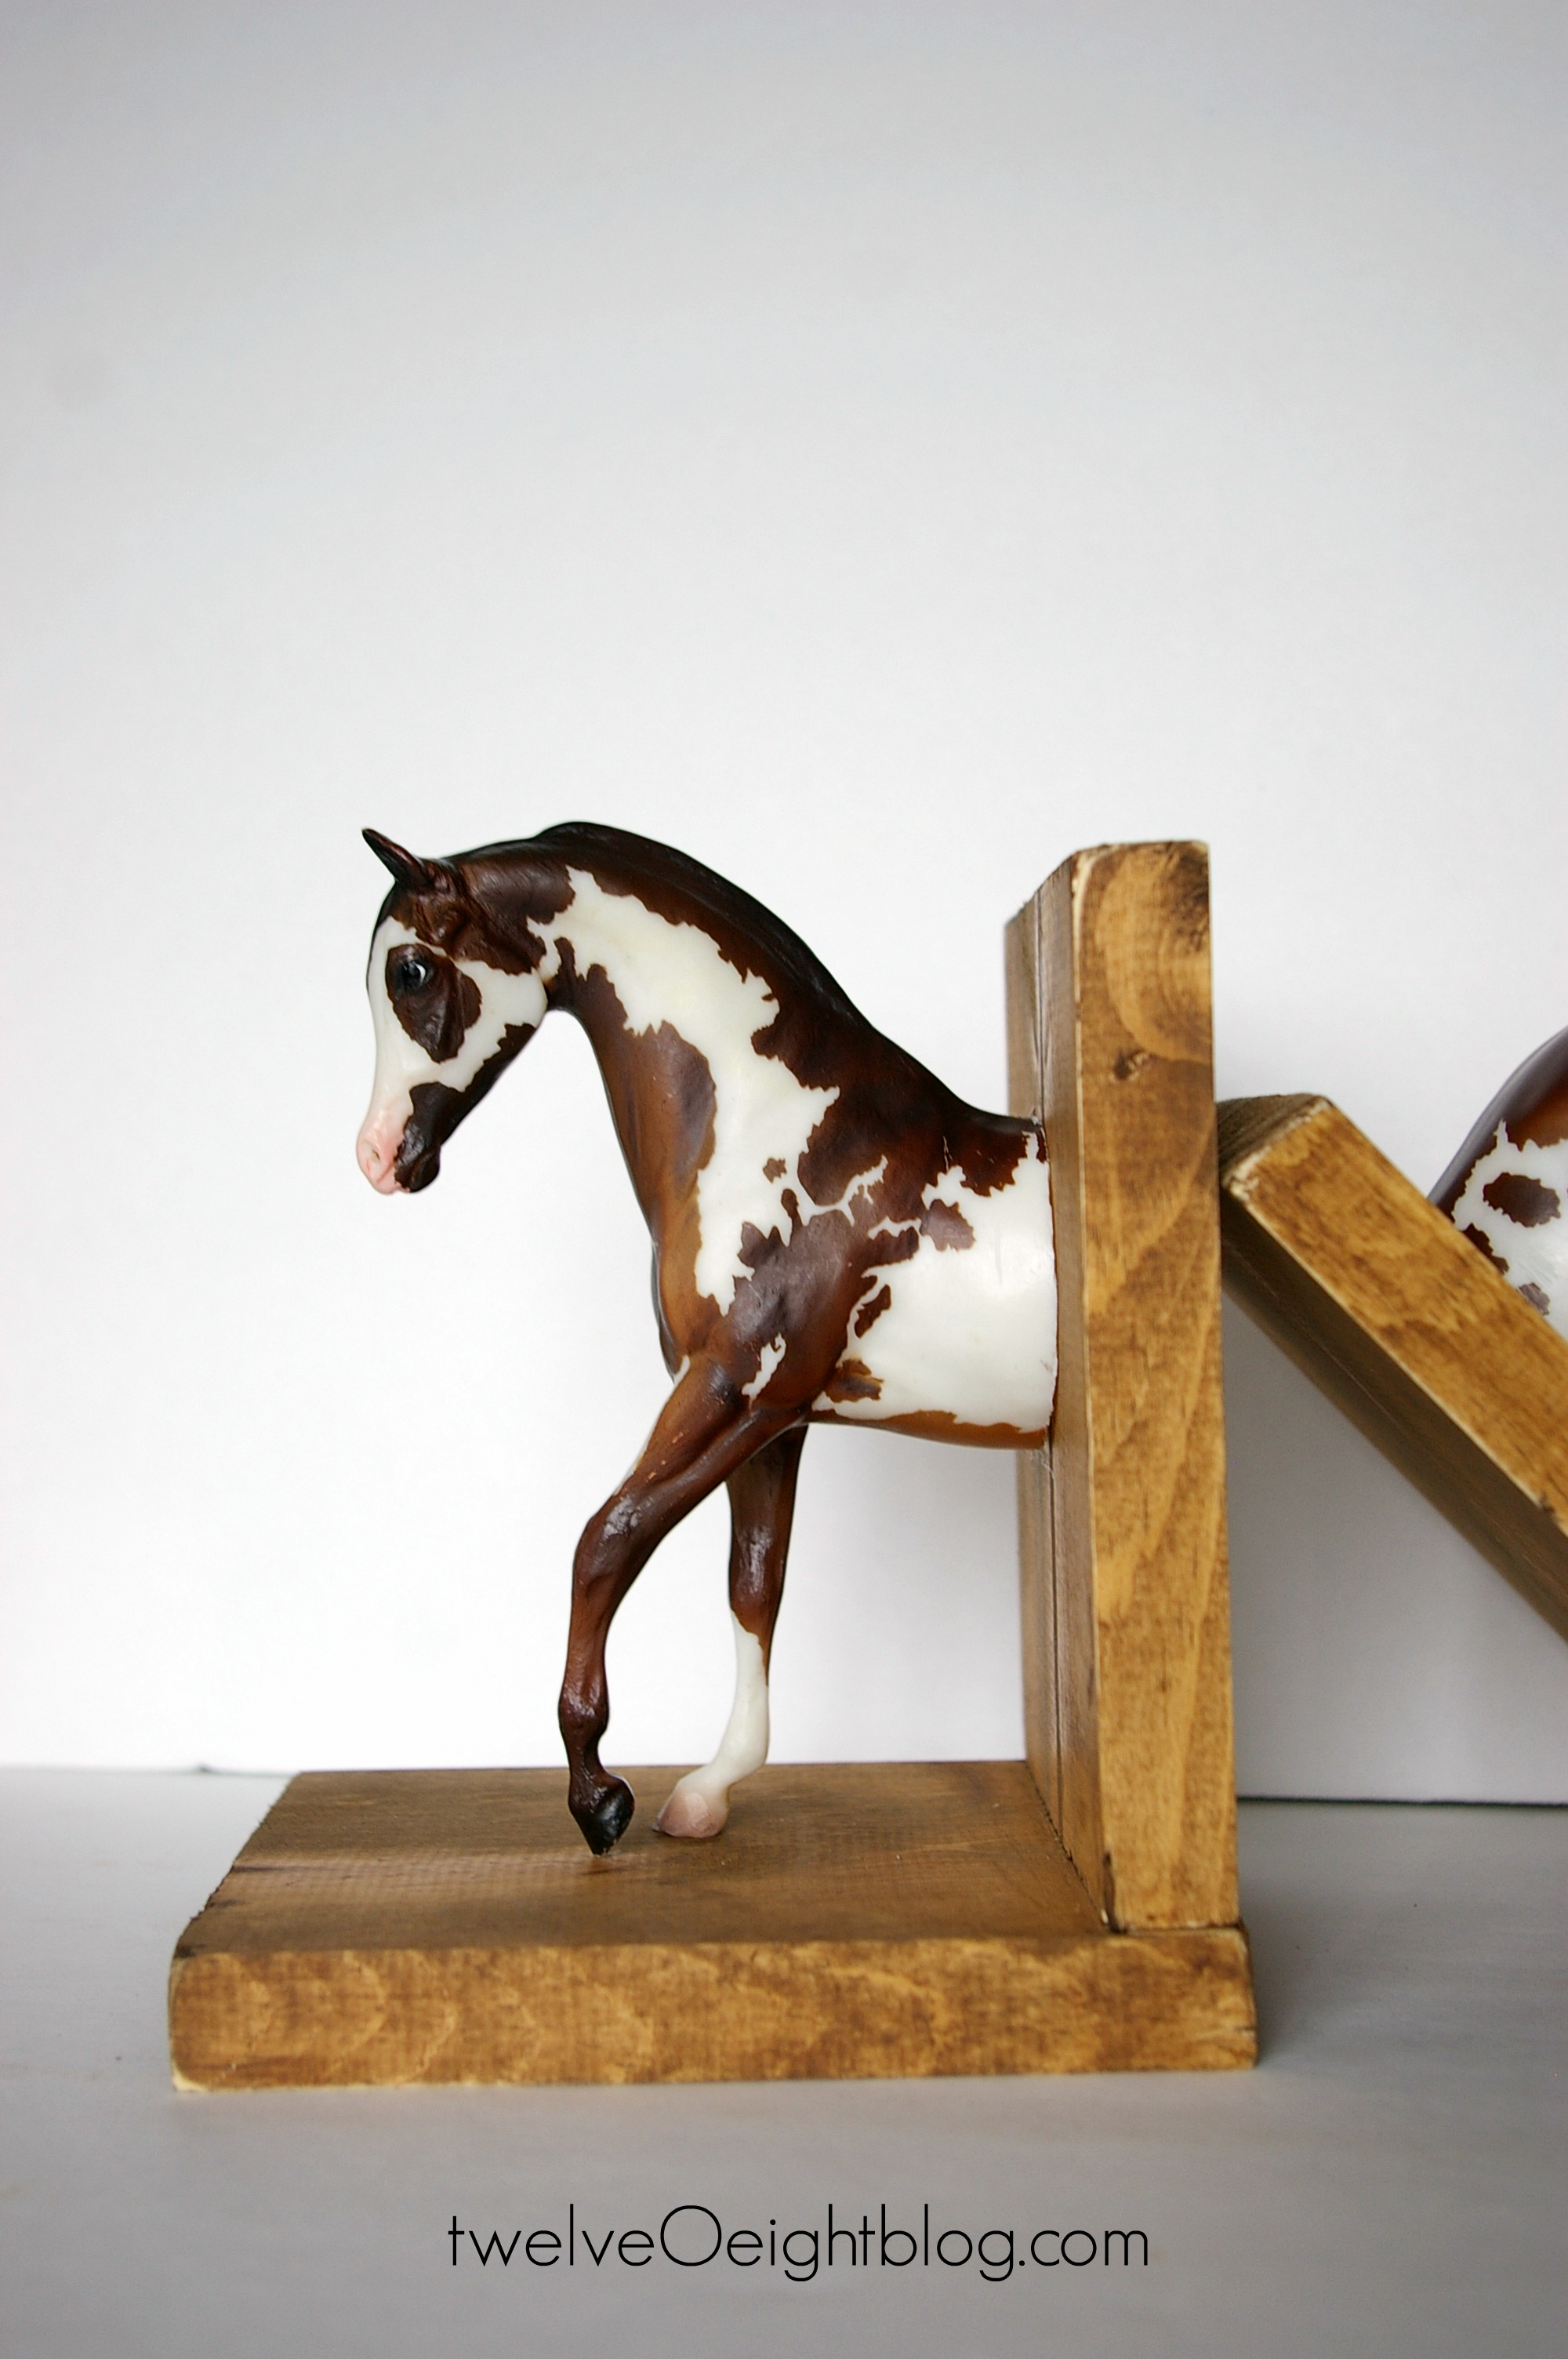 Diy spotted horse bookends how to make horse bookends twelveoeightblog horse diy bookend craft solutioingenieria Gallery